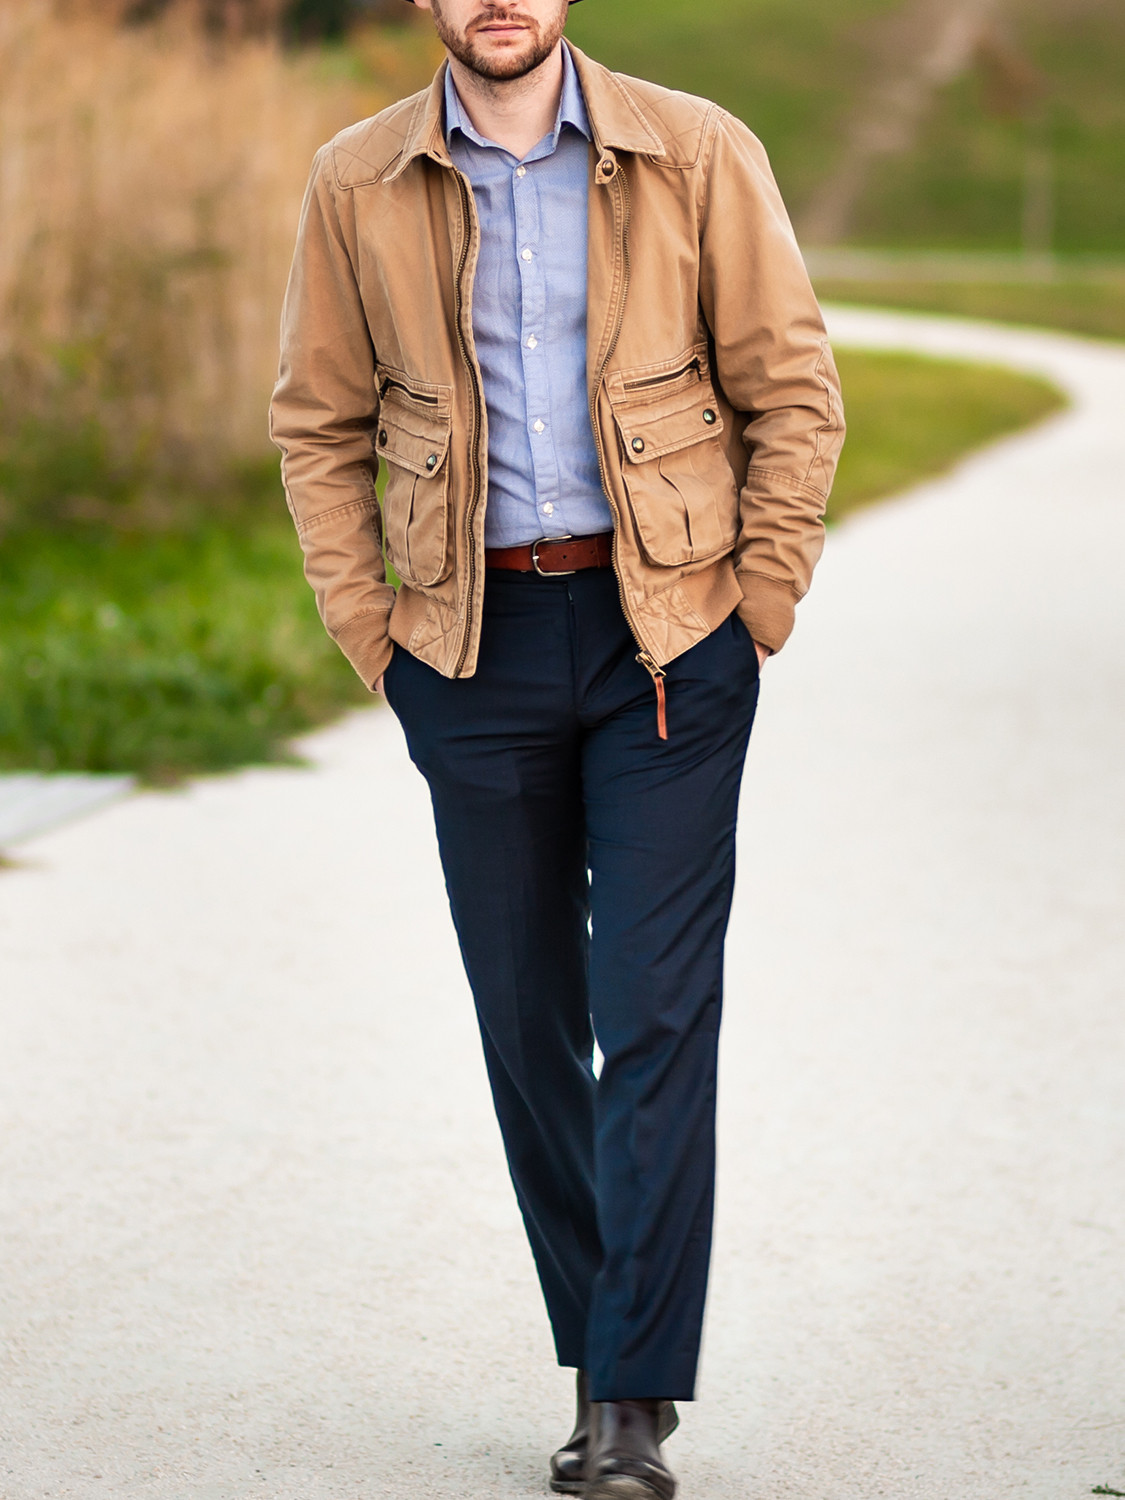 Men's outfit idea for 2021 with neutral field jacket, blue casual shirt, navy dress pants, oxford / derby shoes. Suitable for spring and fall.